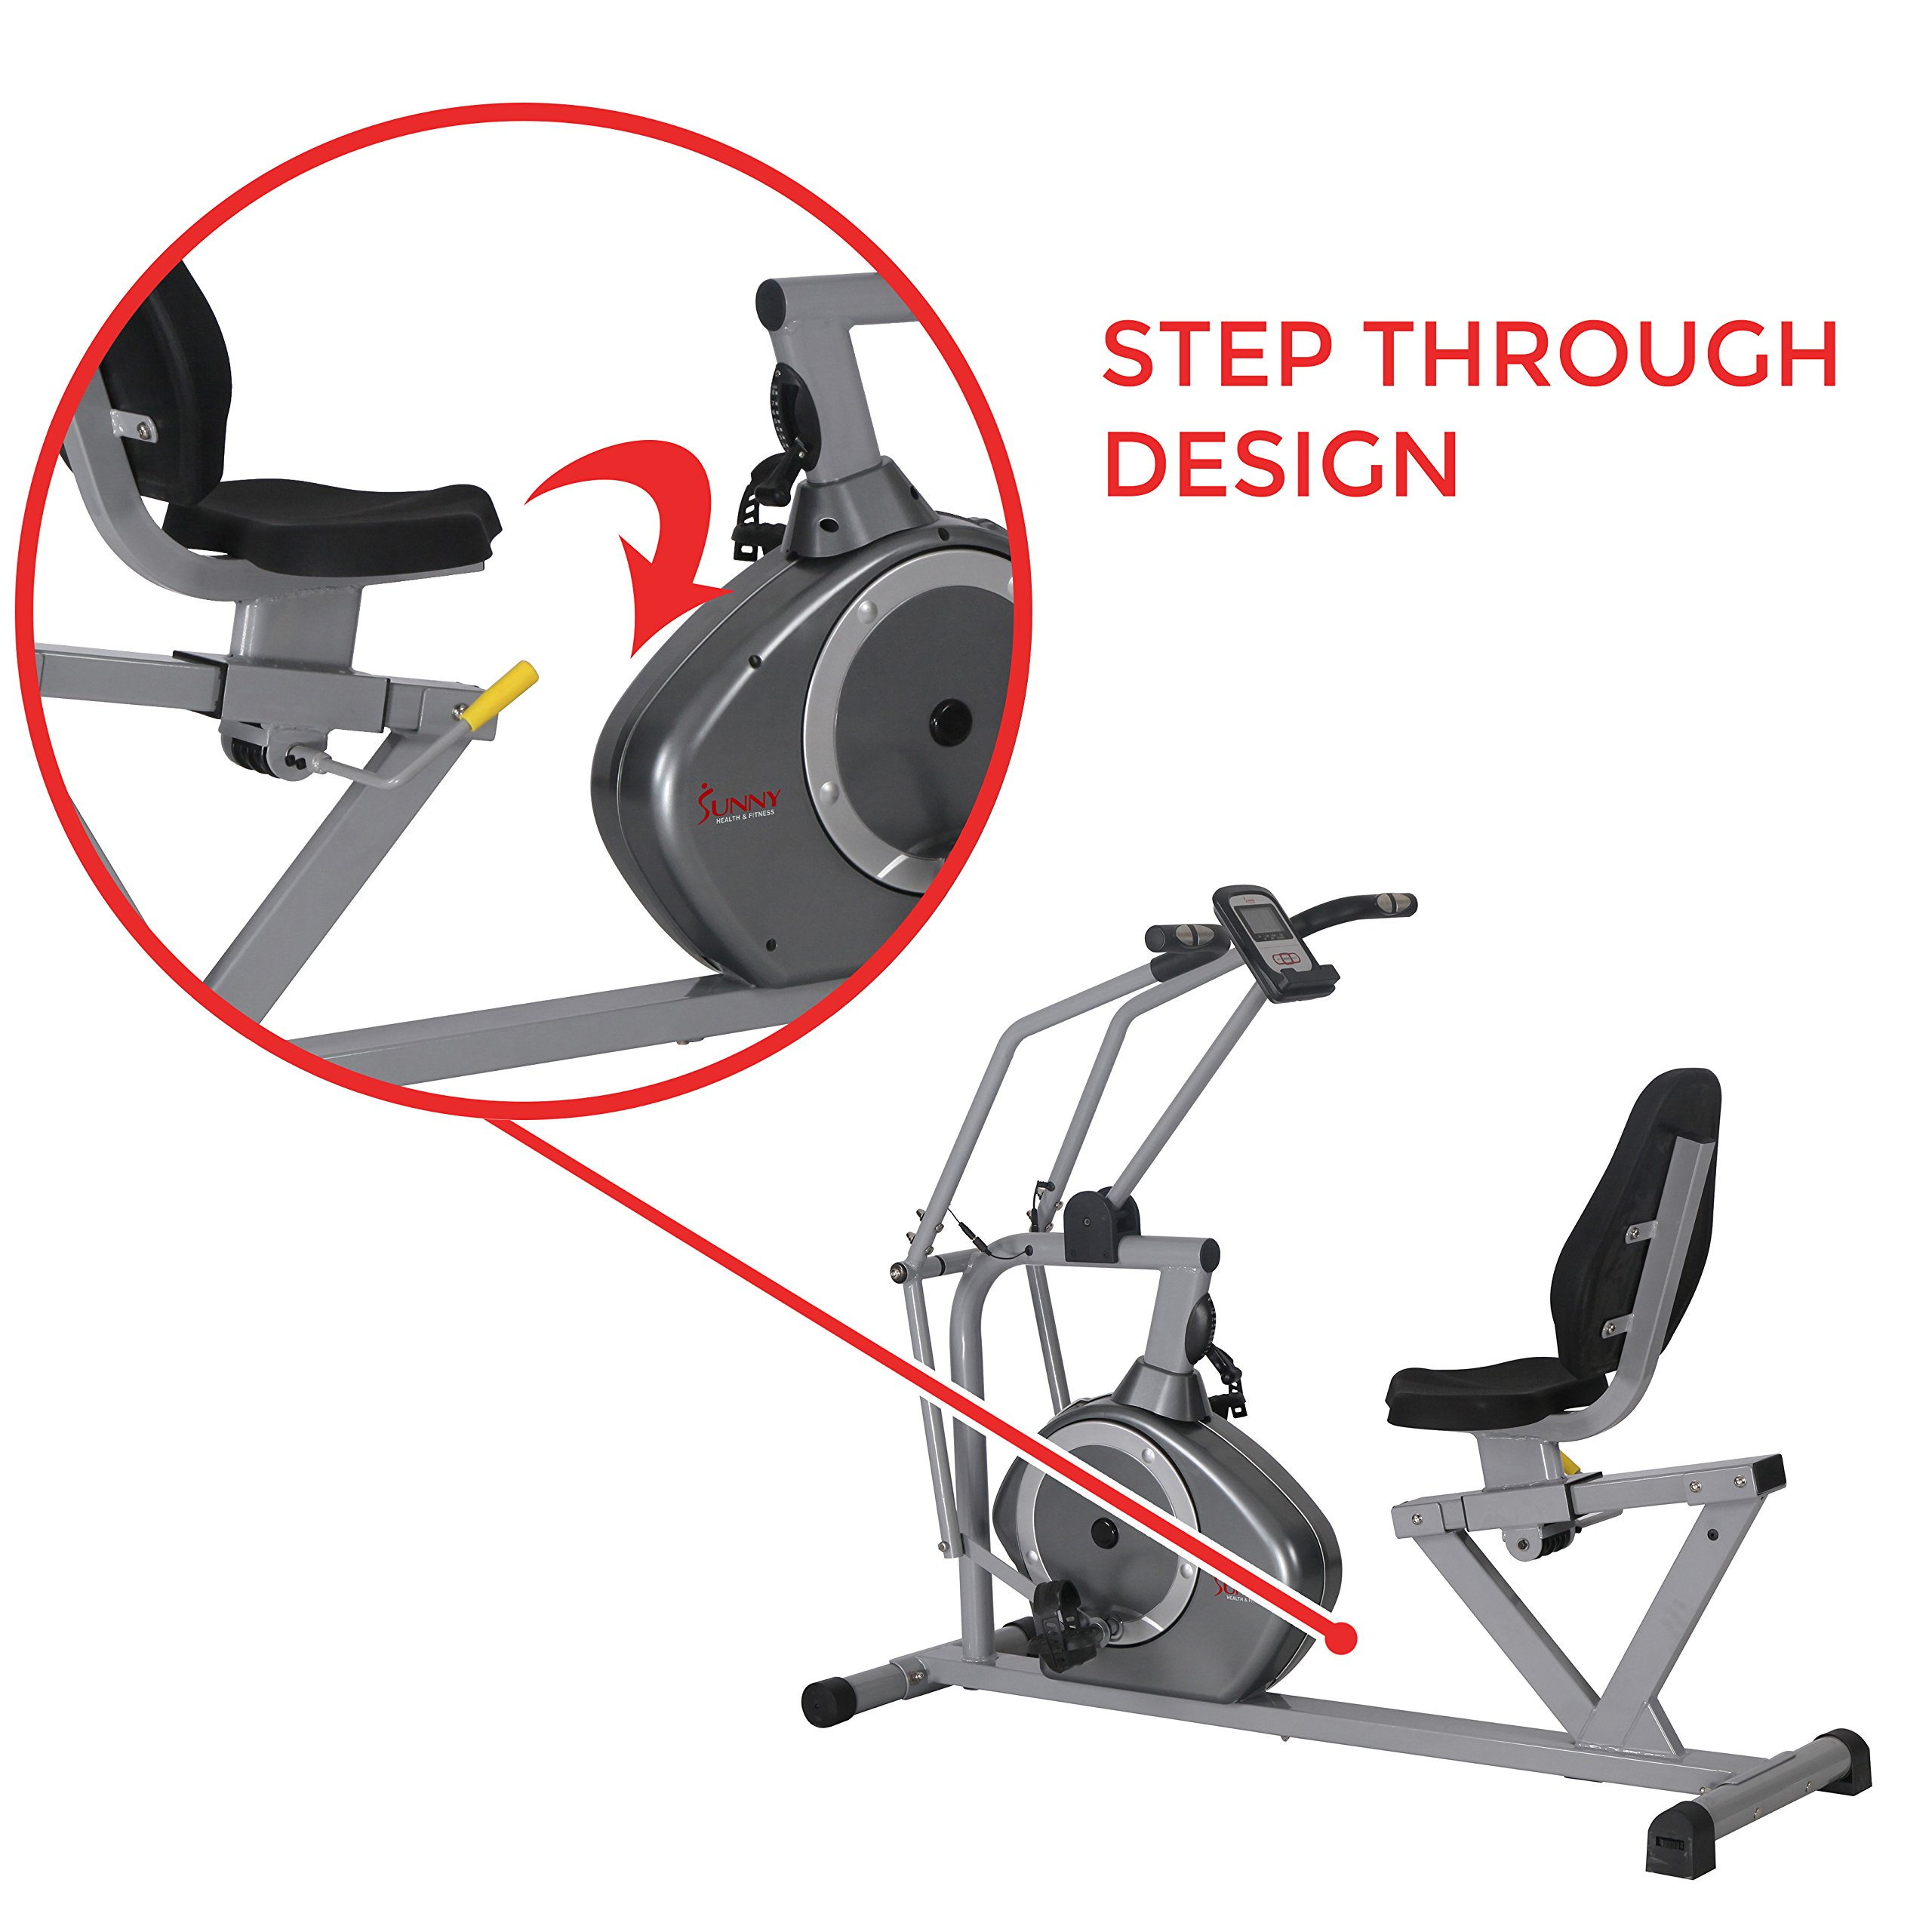 Sunny Health & Fitness Magnetic Recumbent Bike Exercise Bike, 350lb High Weight Capacity, Cross Training, Arm Exercisers, Monitor, Pulse Rate Monitoring - SF-RB4708 by Sunny Health & Fitness (Image #10)